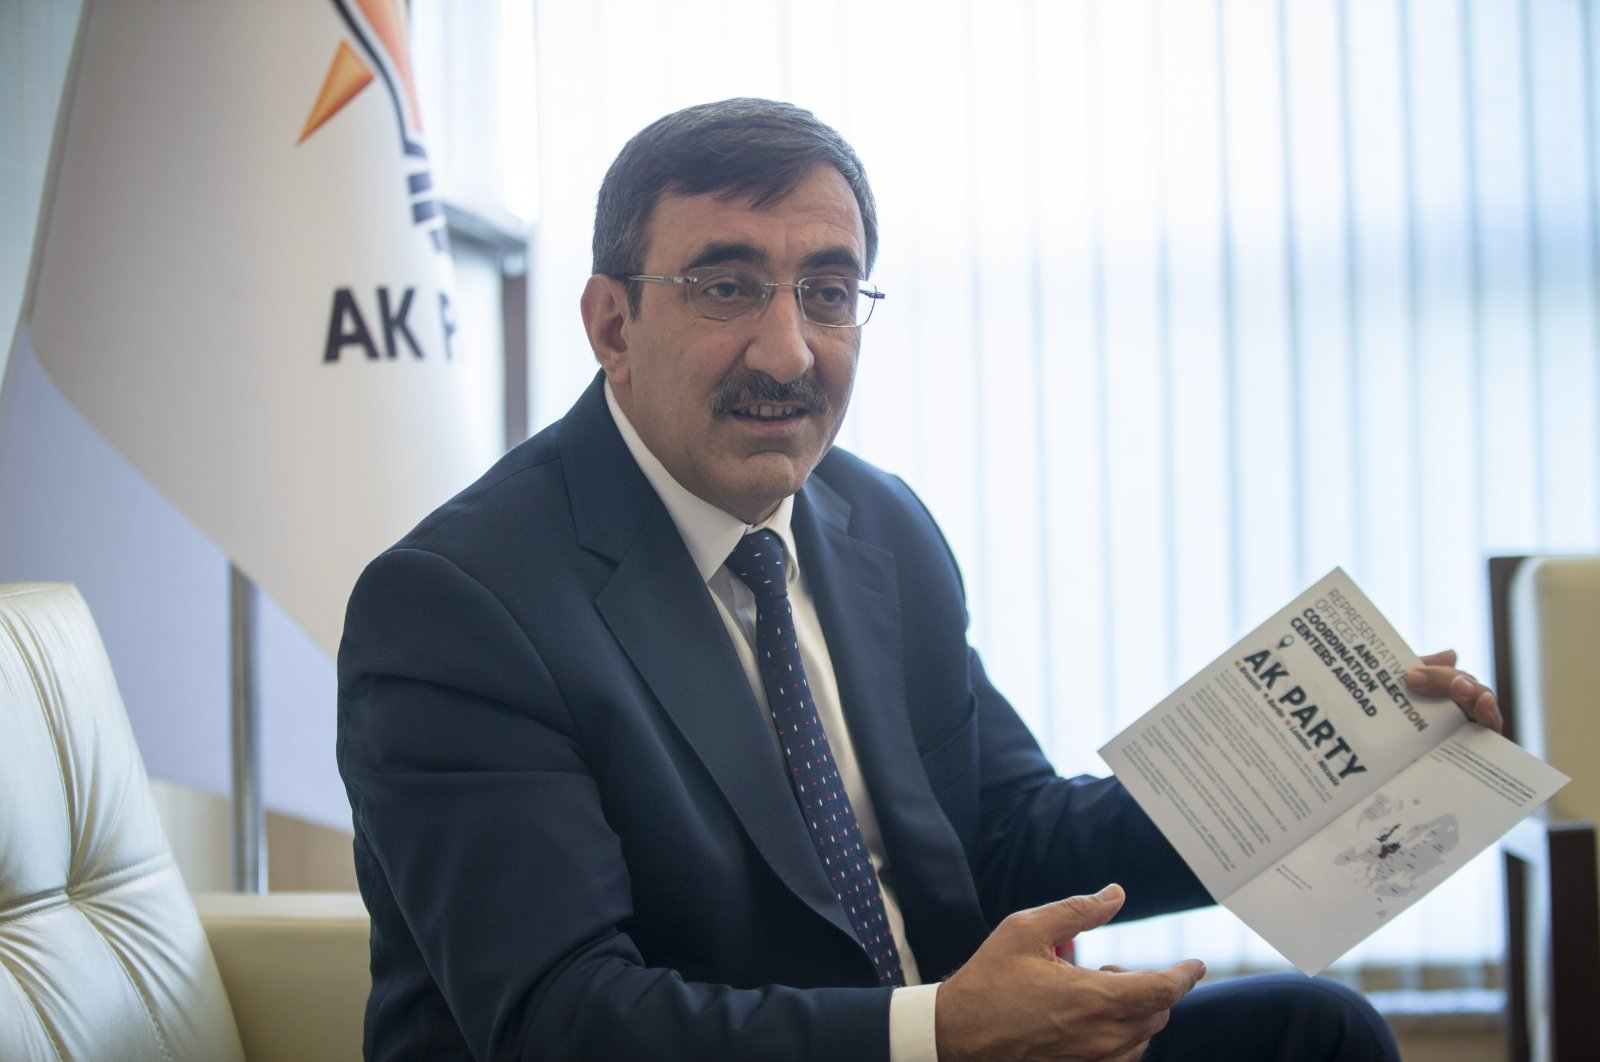 The ruling Justice and Development Party (AK Party) Deputy Chair Cevdet Yılmaz explains about the booklets prepared by the party, Sept. 28, 2020. (AA Photo)